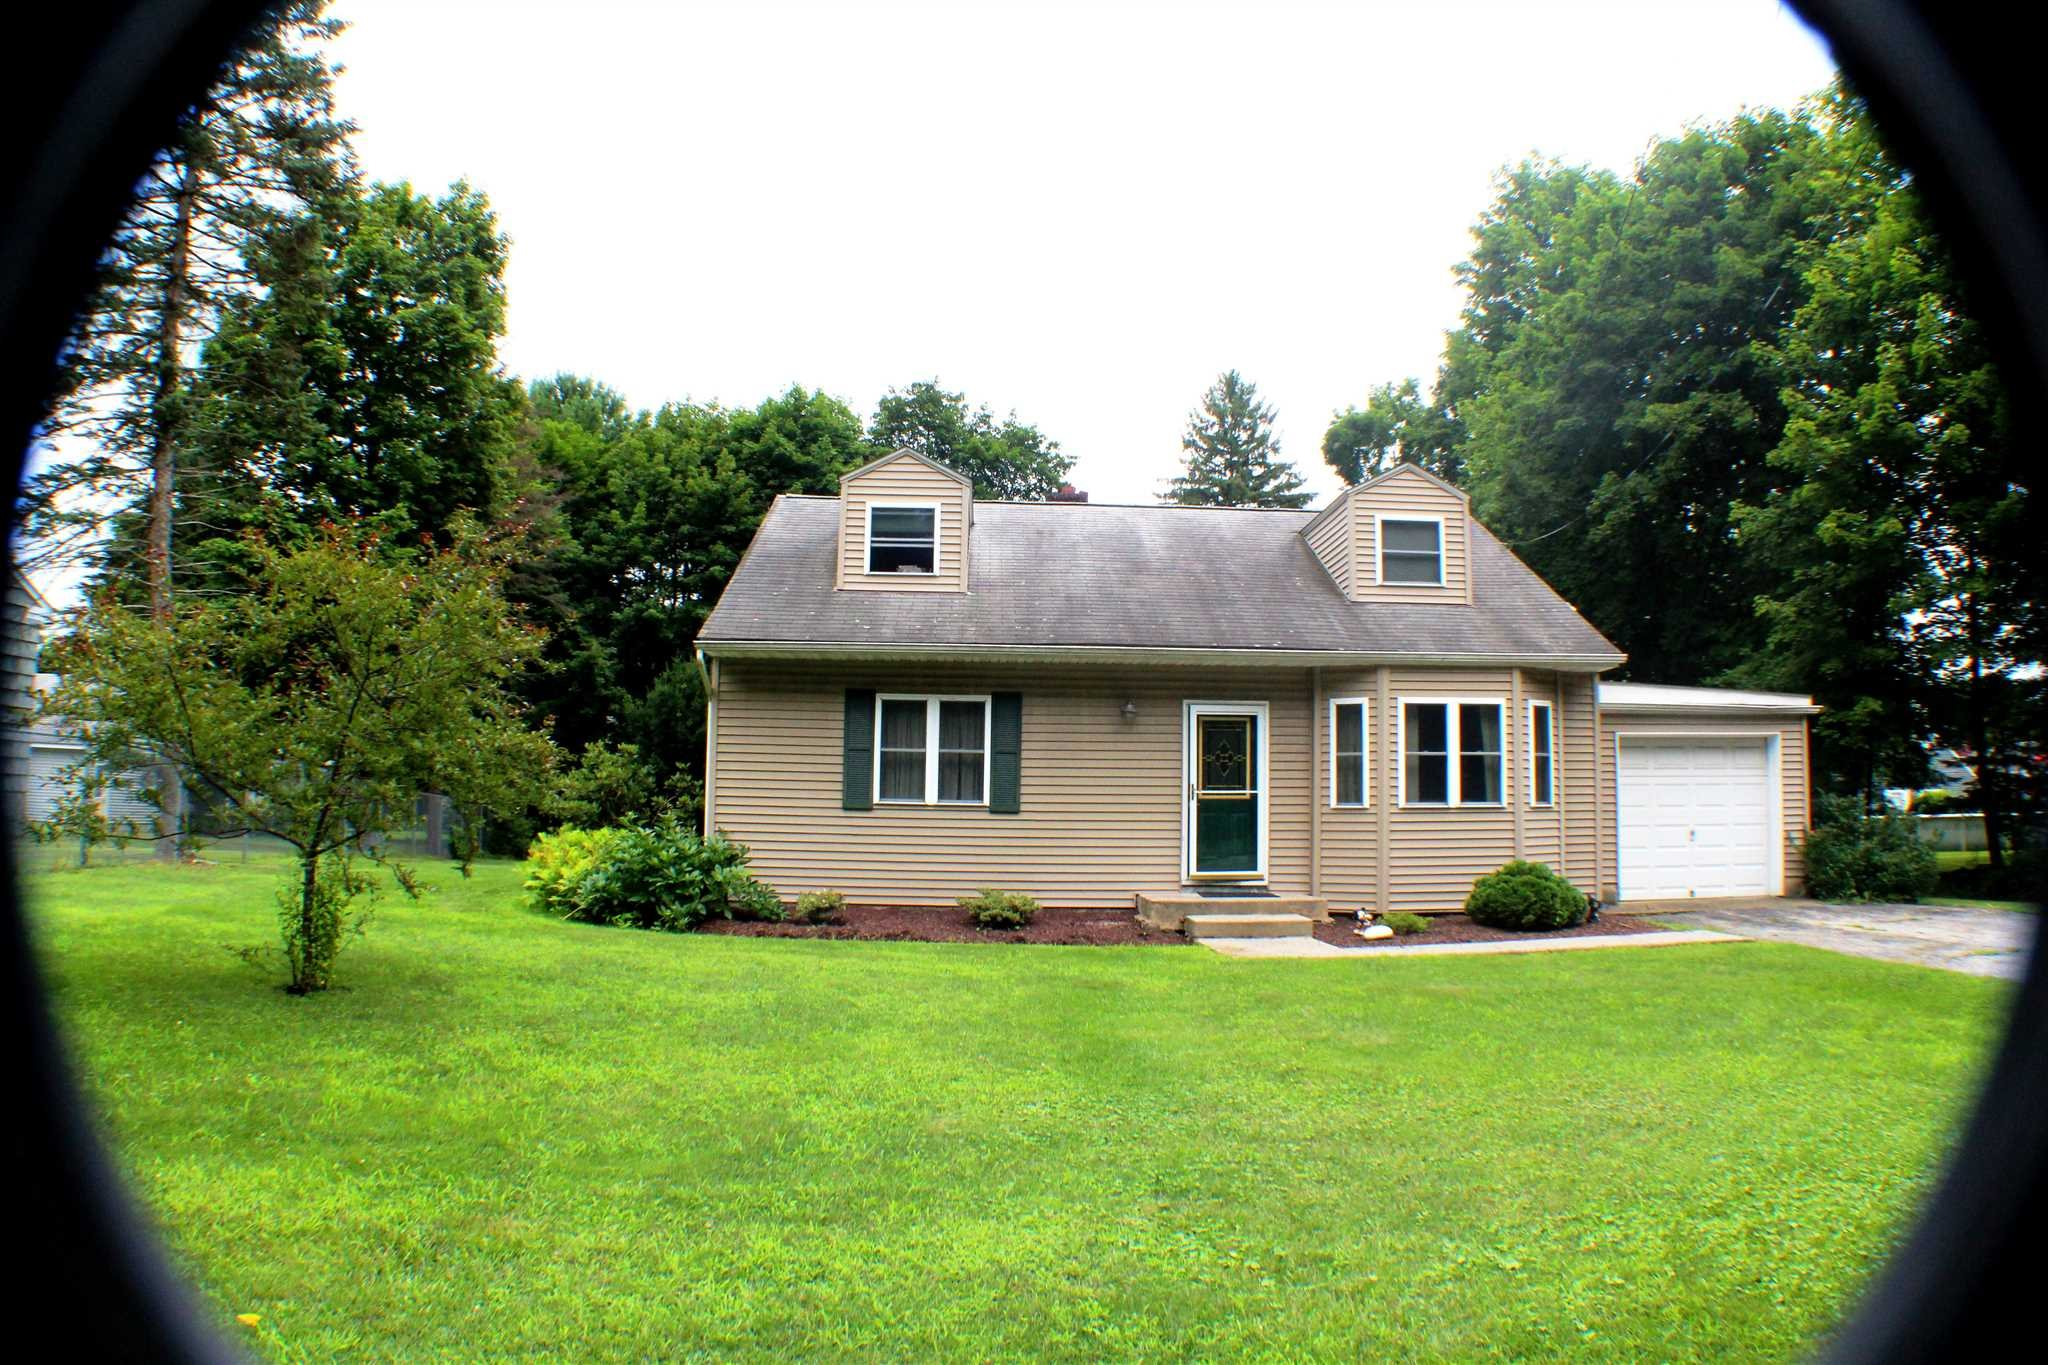 Single Family Home for Sale at 1336 ROUTE 9G 1336 ROUTE 9G Hyde Park, New York 12538 United States